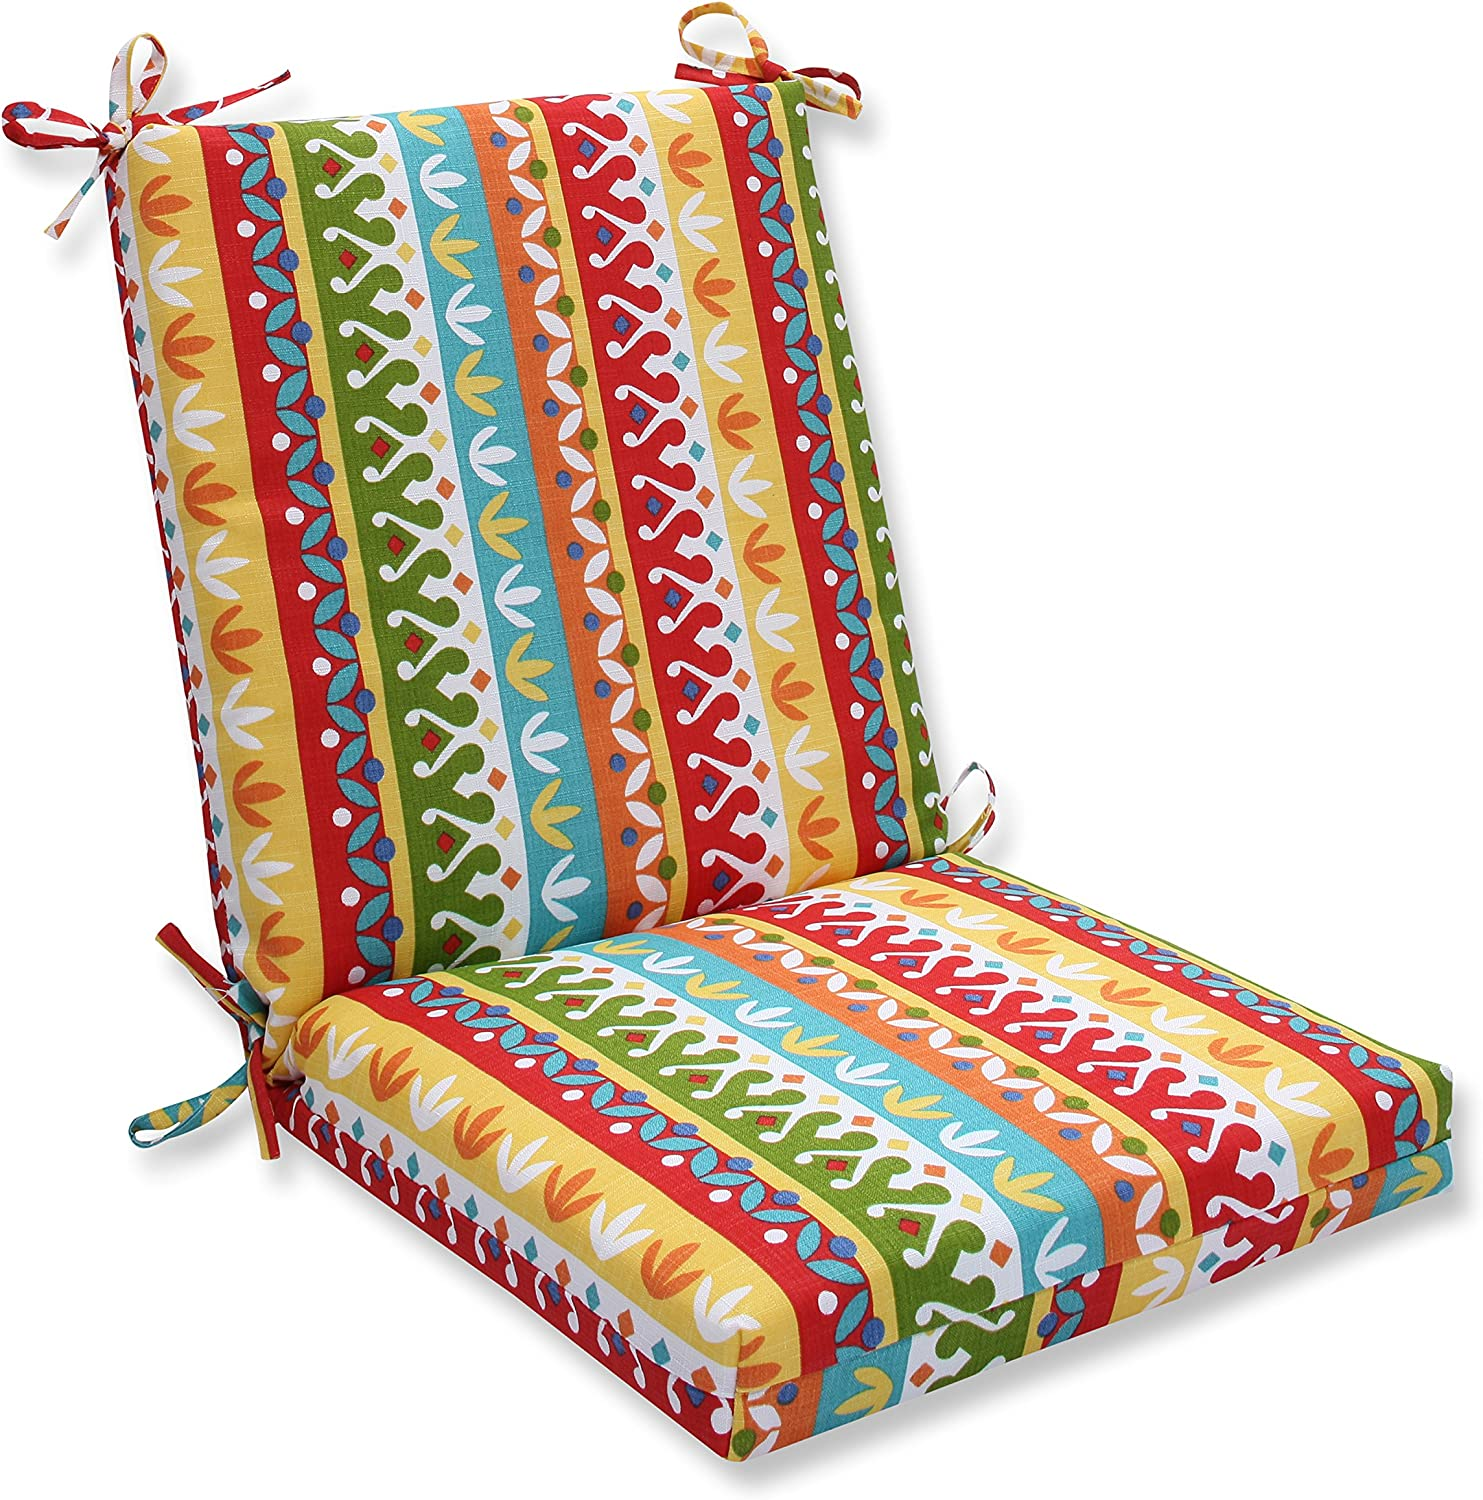 Pillow Perfect Outdoor Indoor Cotrell Garden Squared Corners Chair Cushion